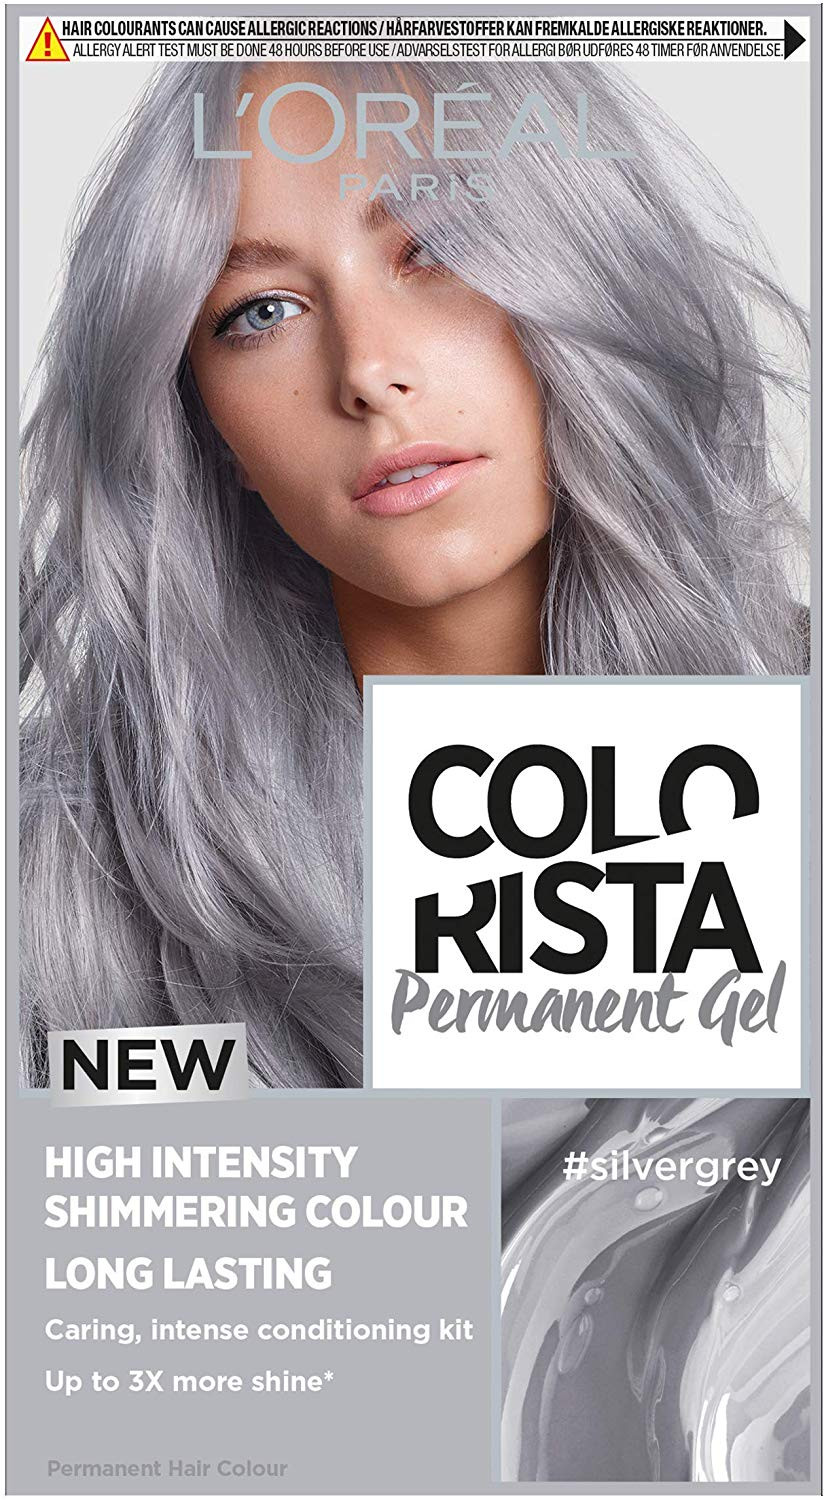 Femie Magazine Time For a Hair Flick: 5 Awesome Hair Colours to Dye For!